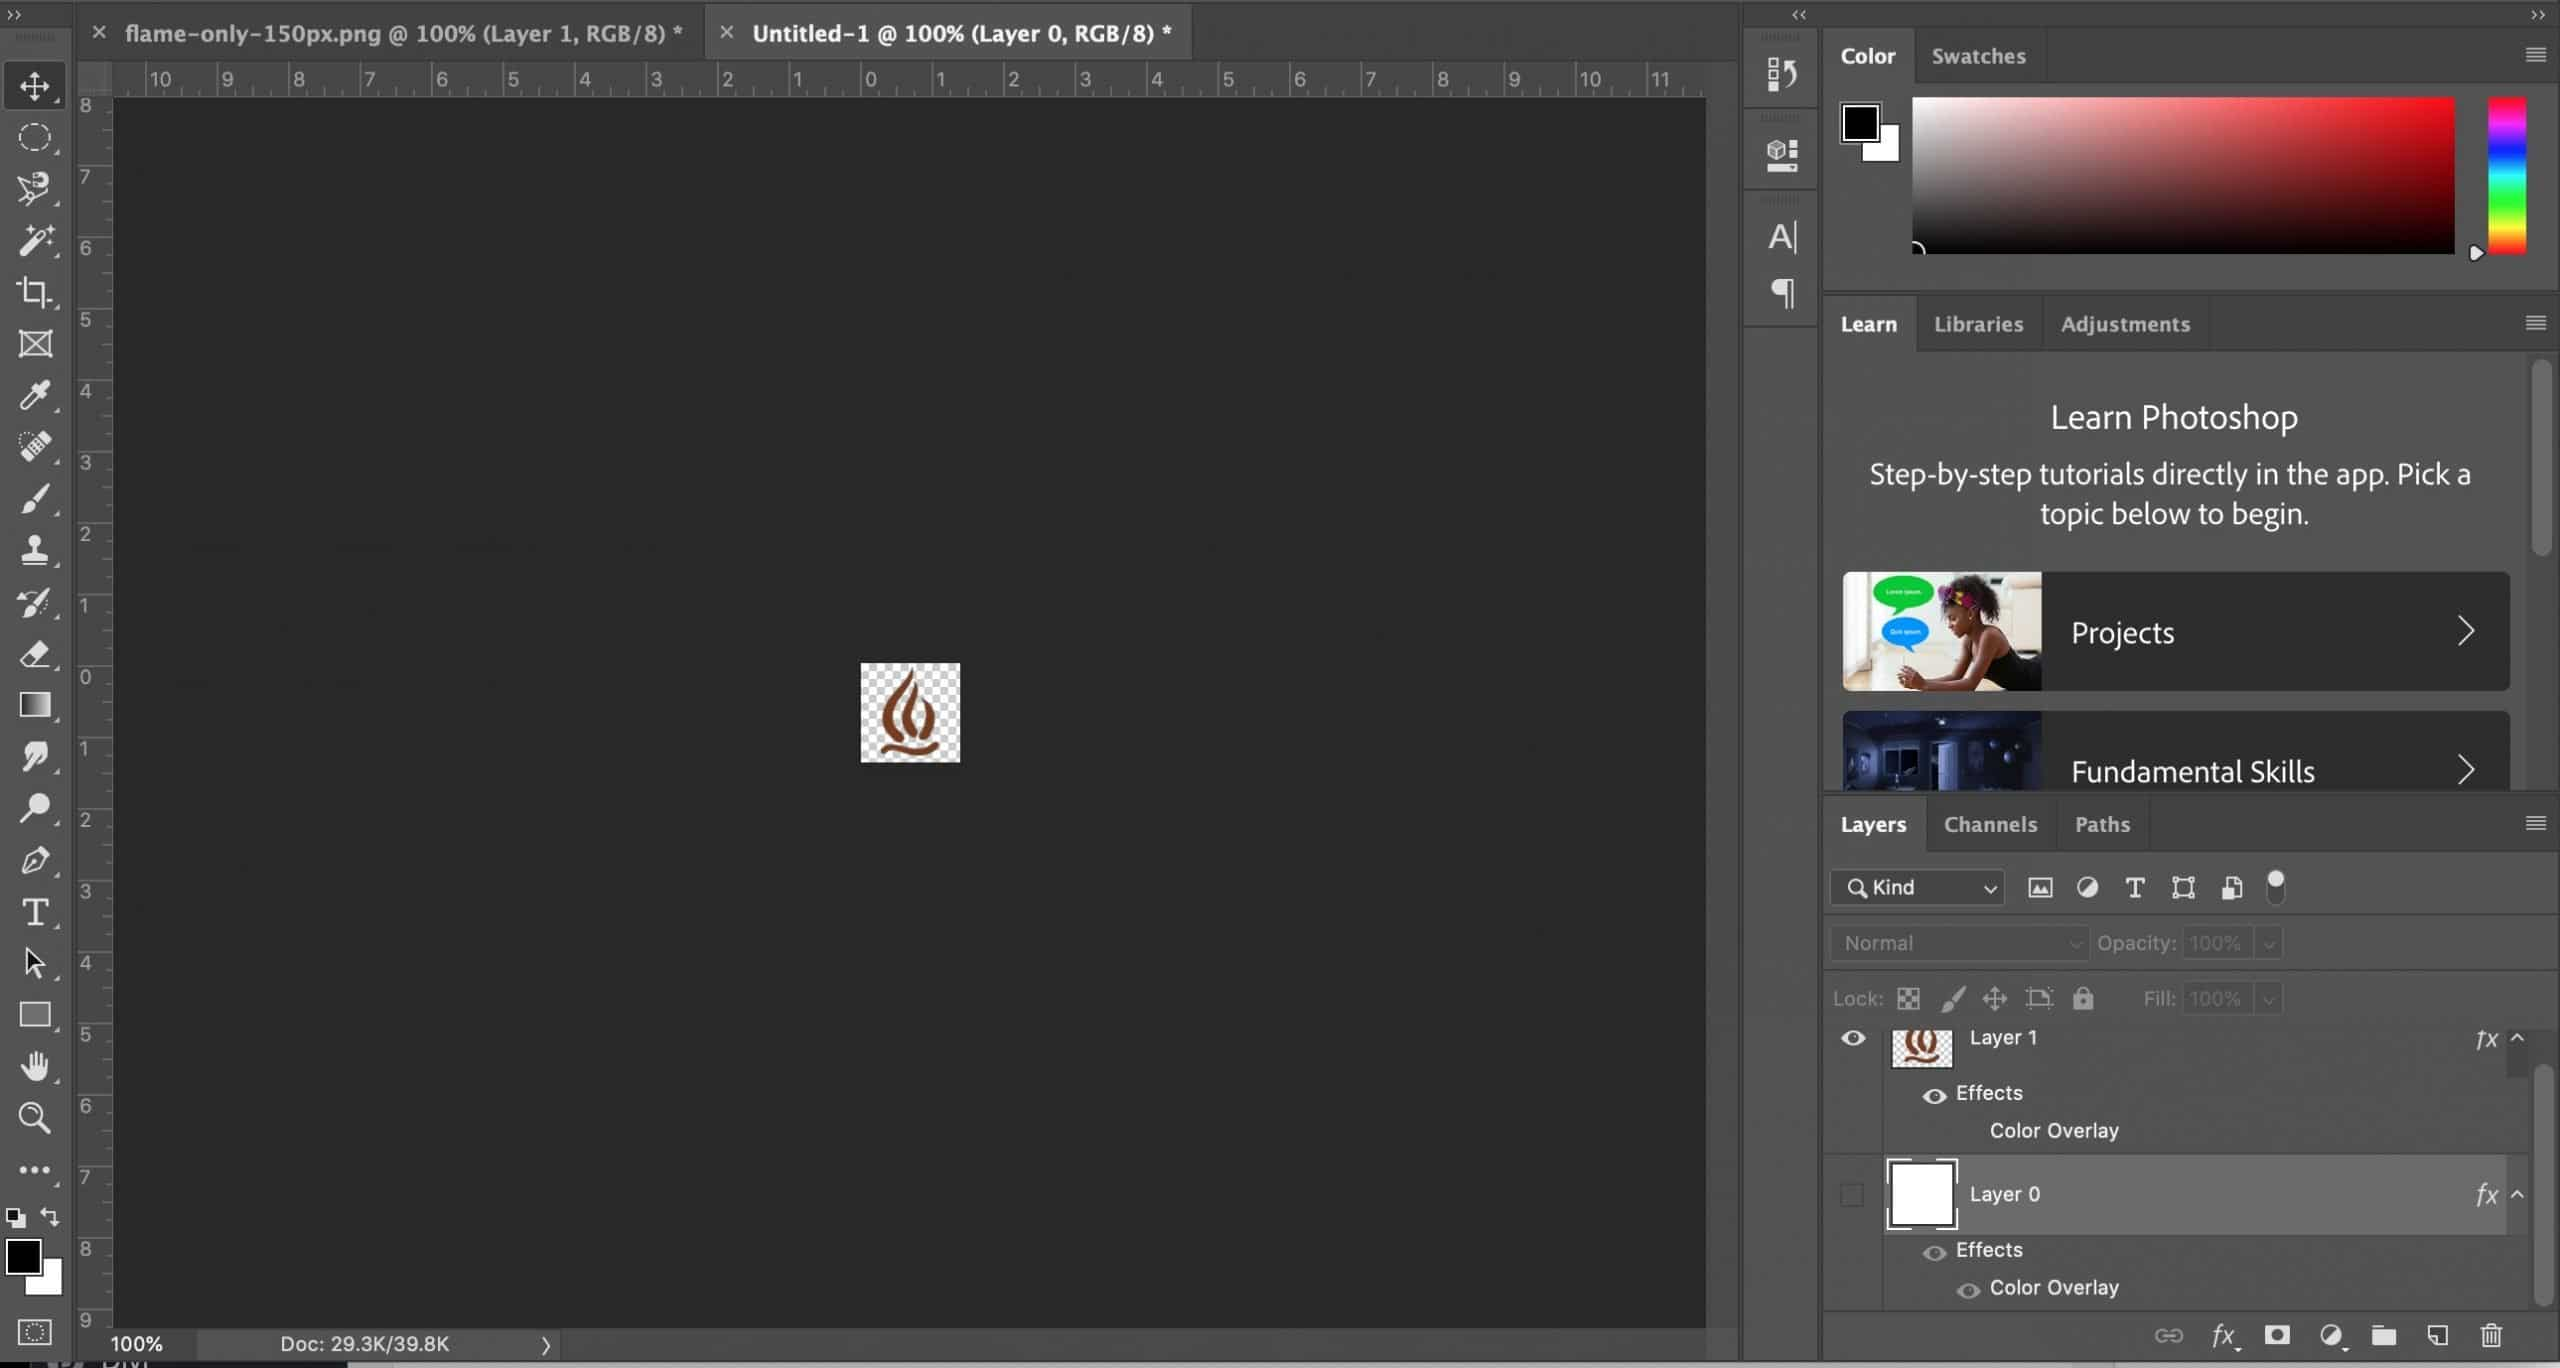 Customizing Image in Photoshop for Divi Social Media Module